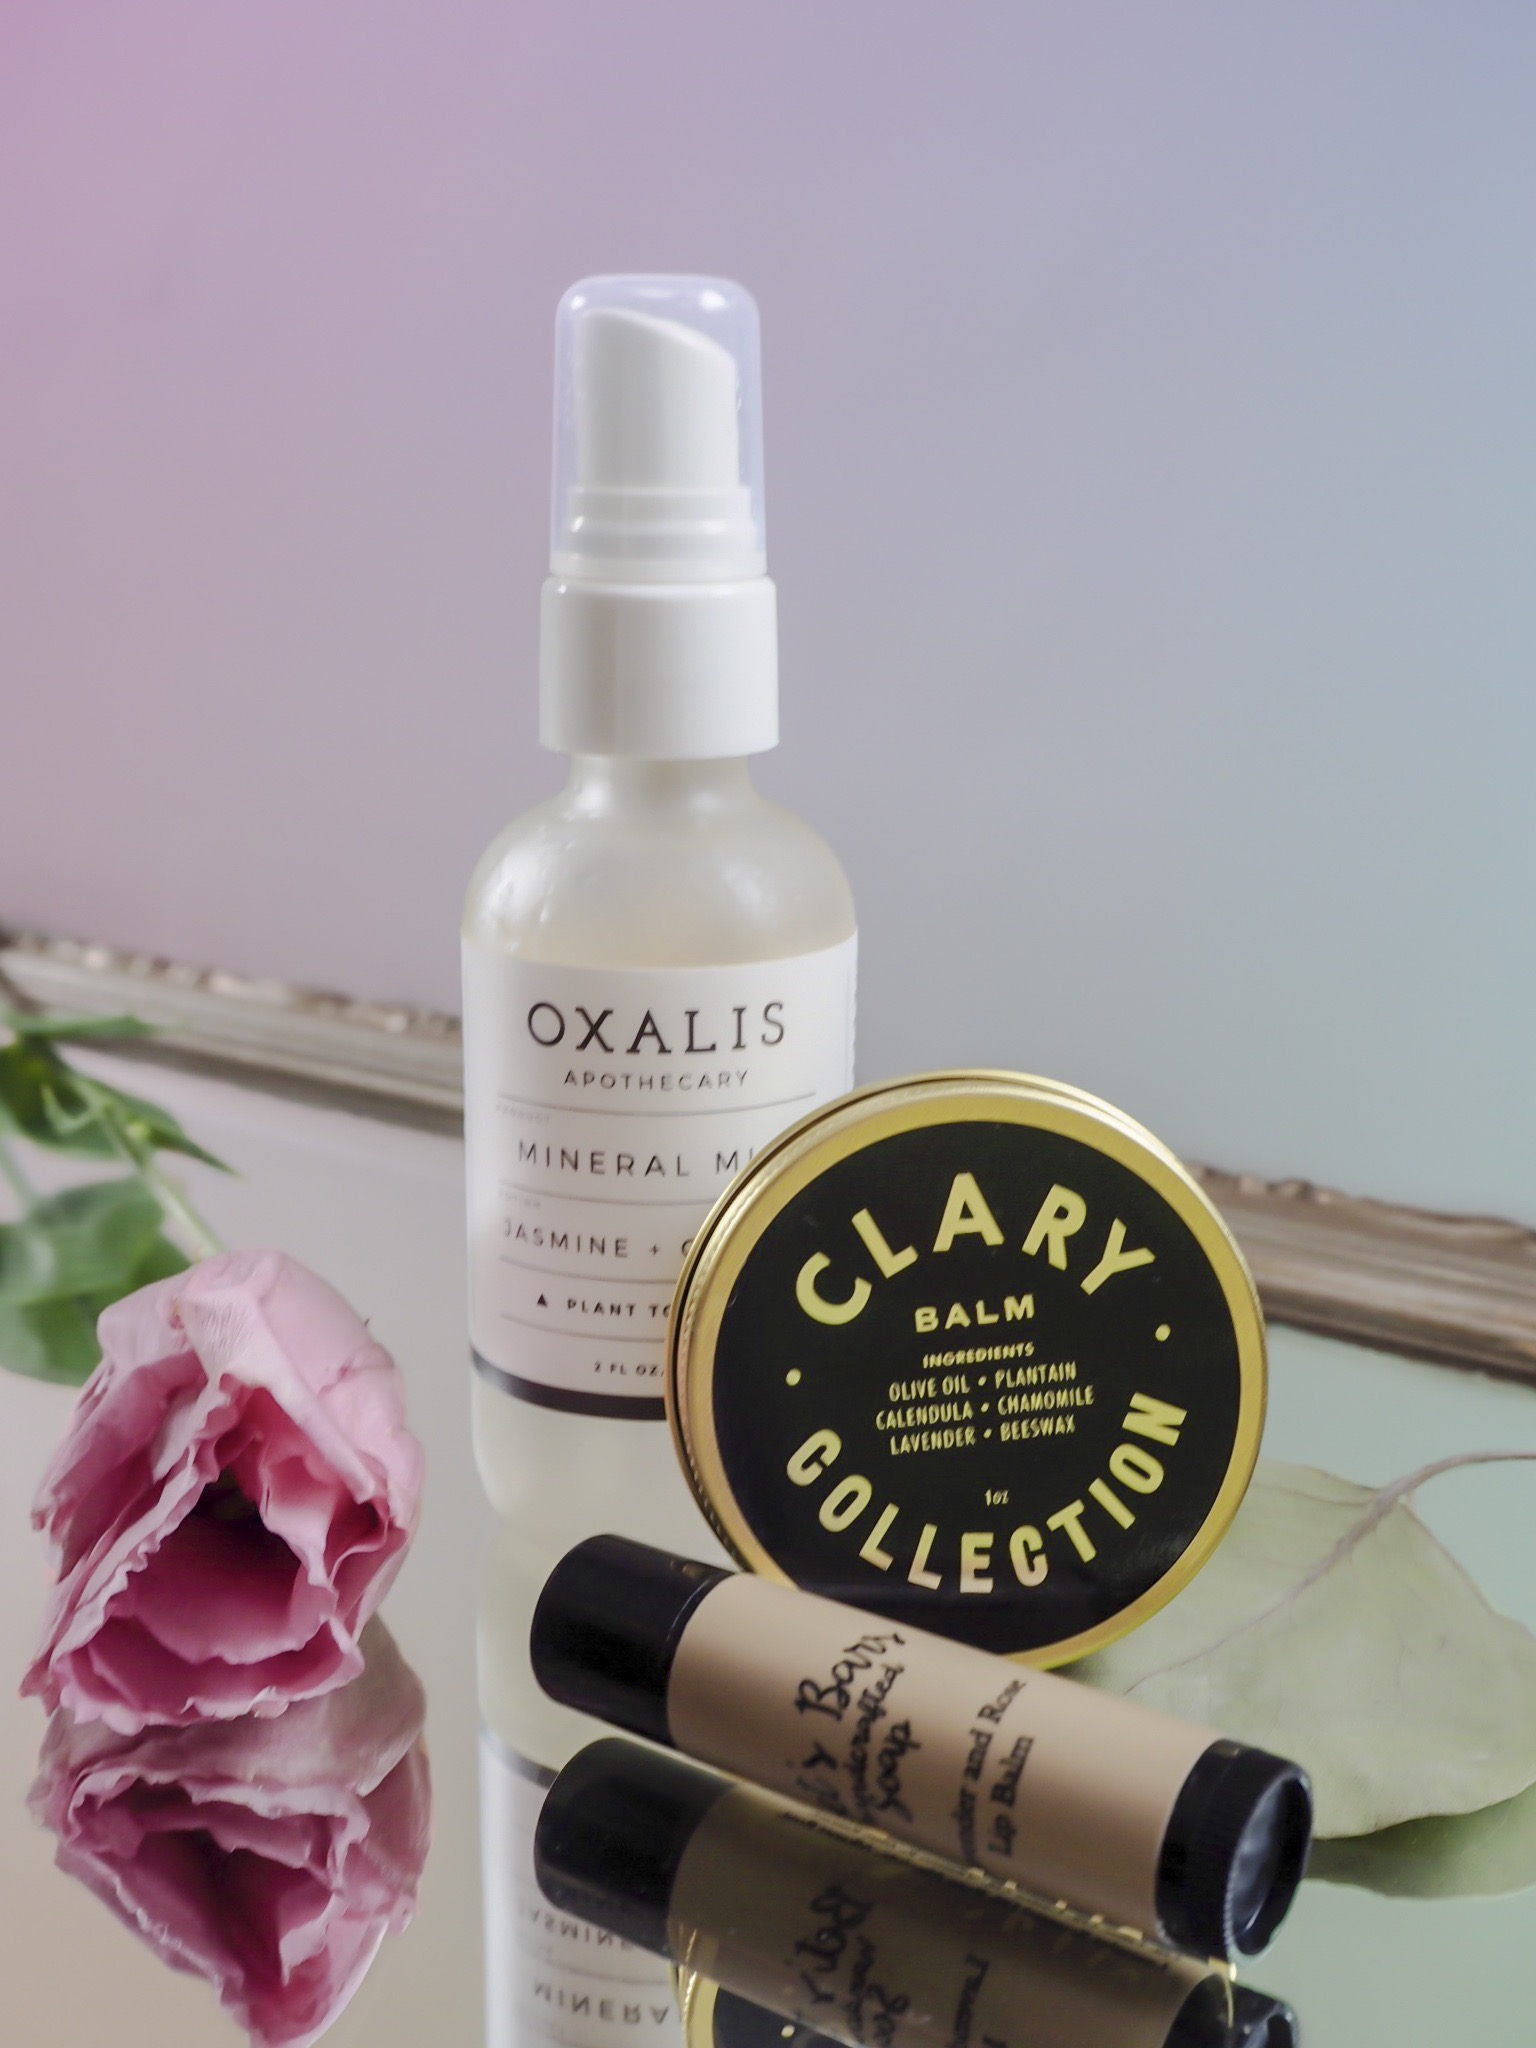 All Natural Beauty Bag essentials by W+W